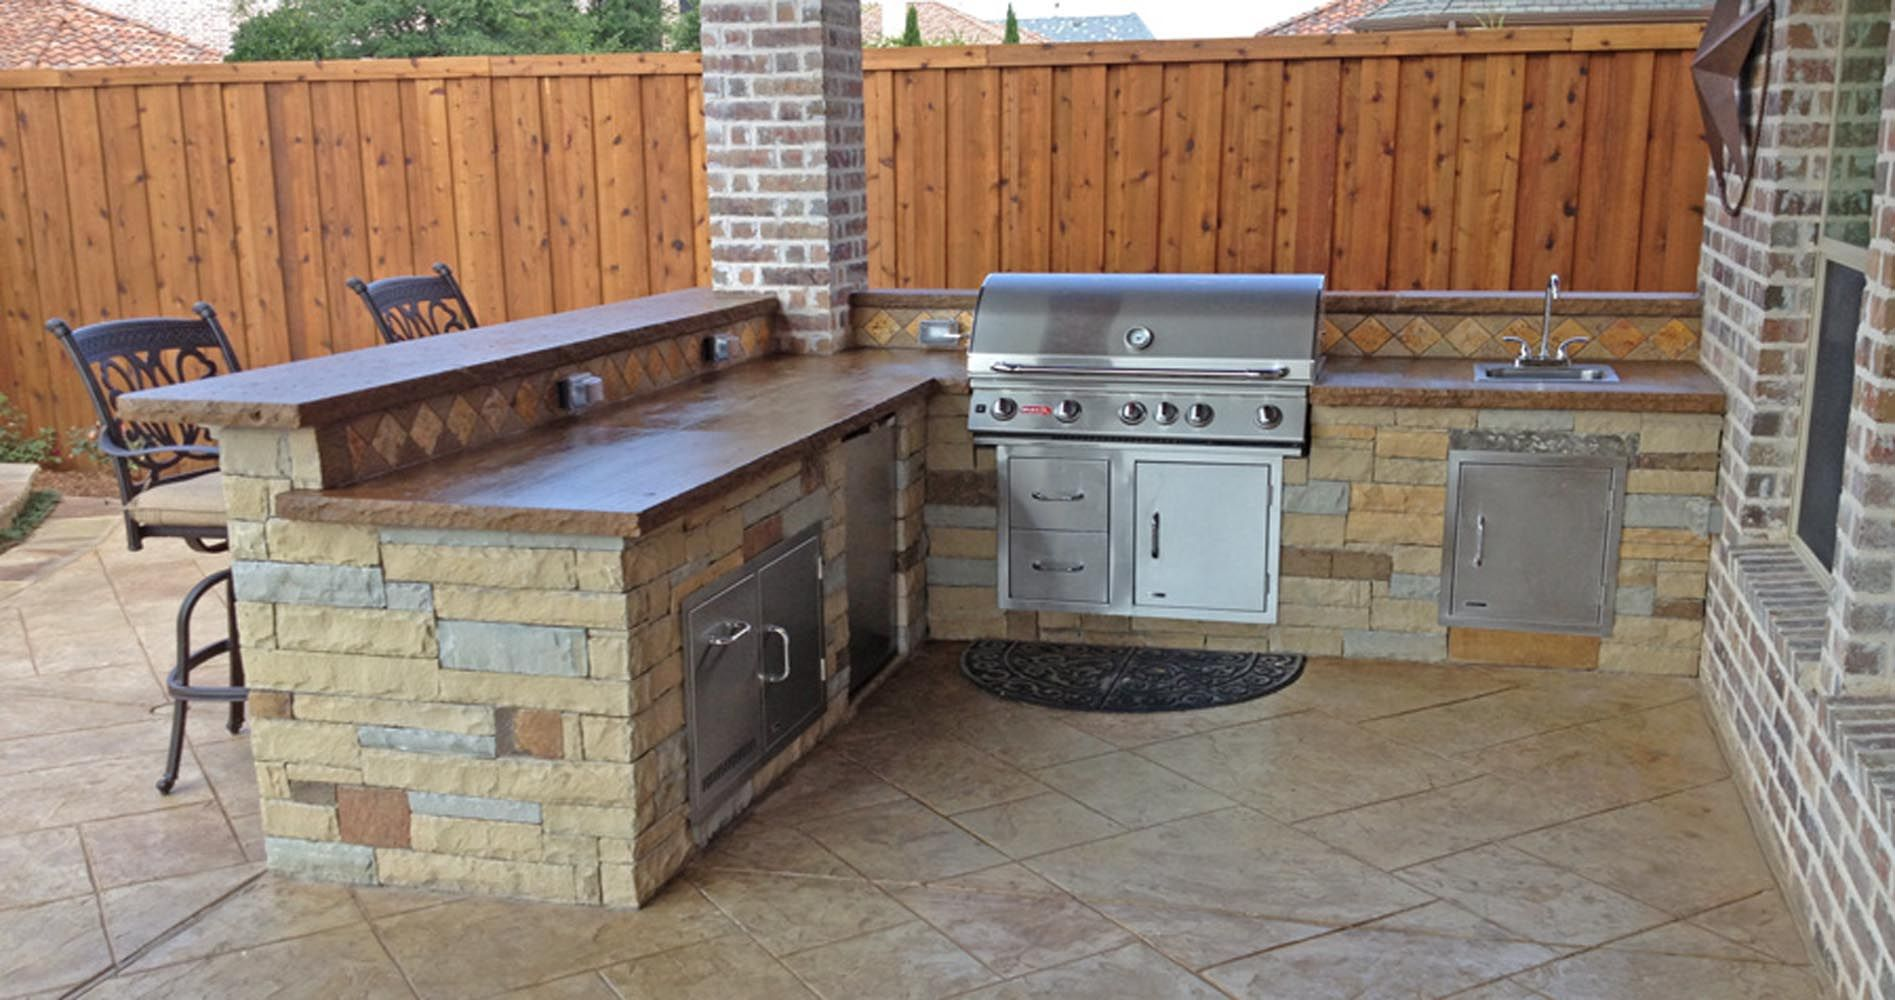 The walls and backsplash ideas Outdoor